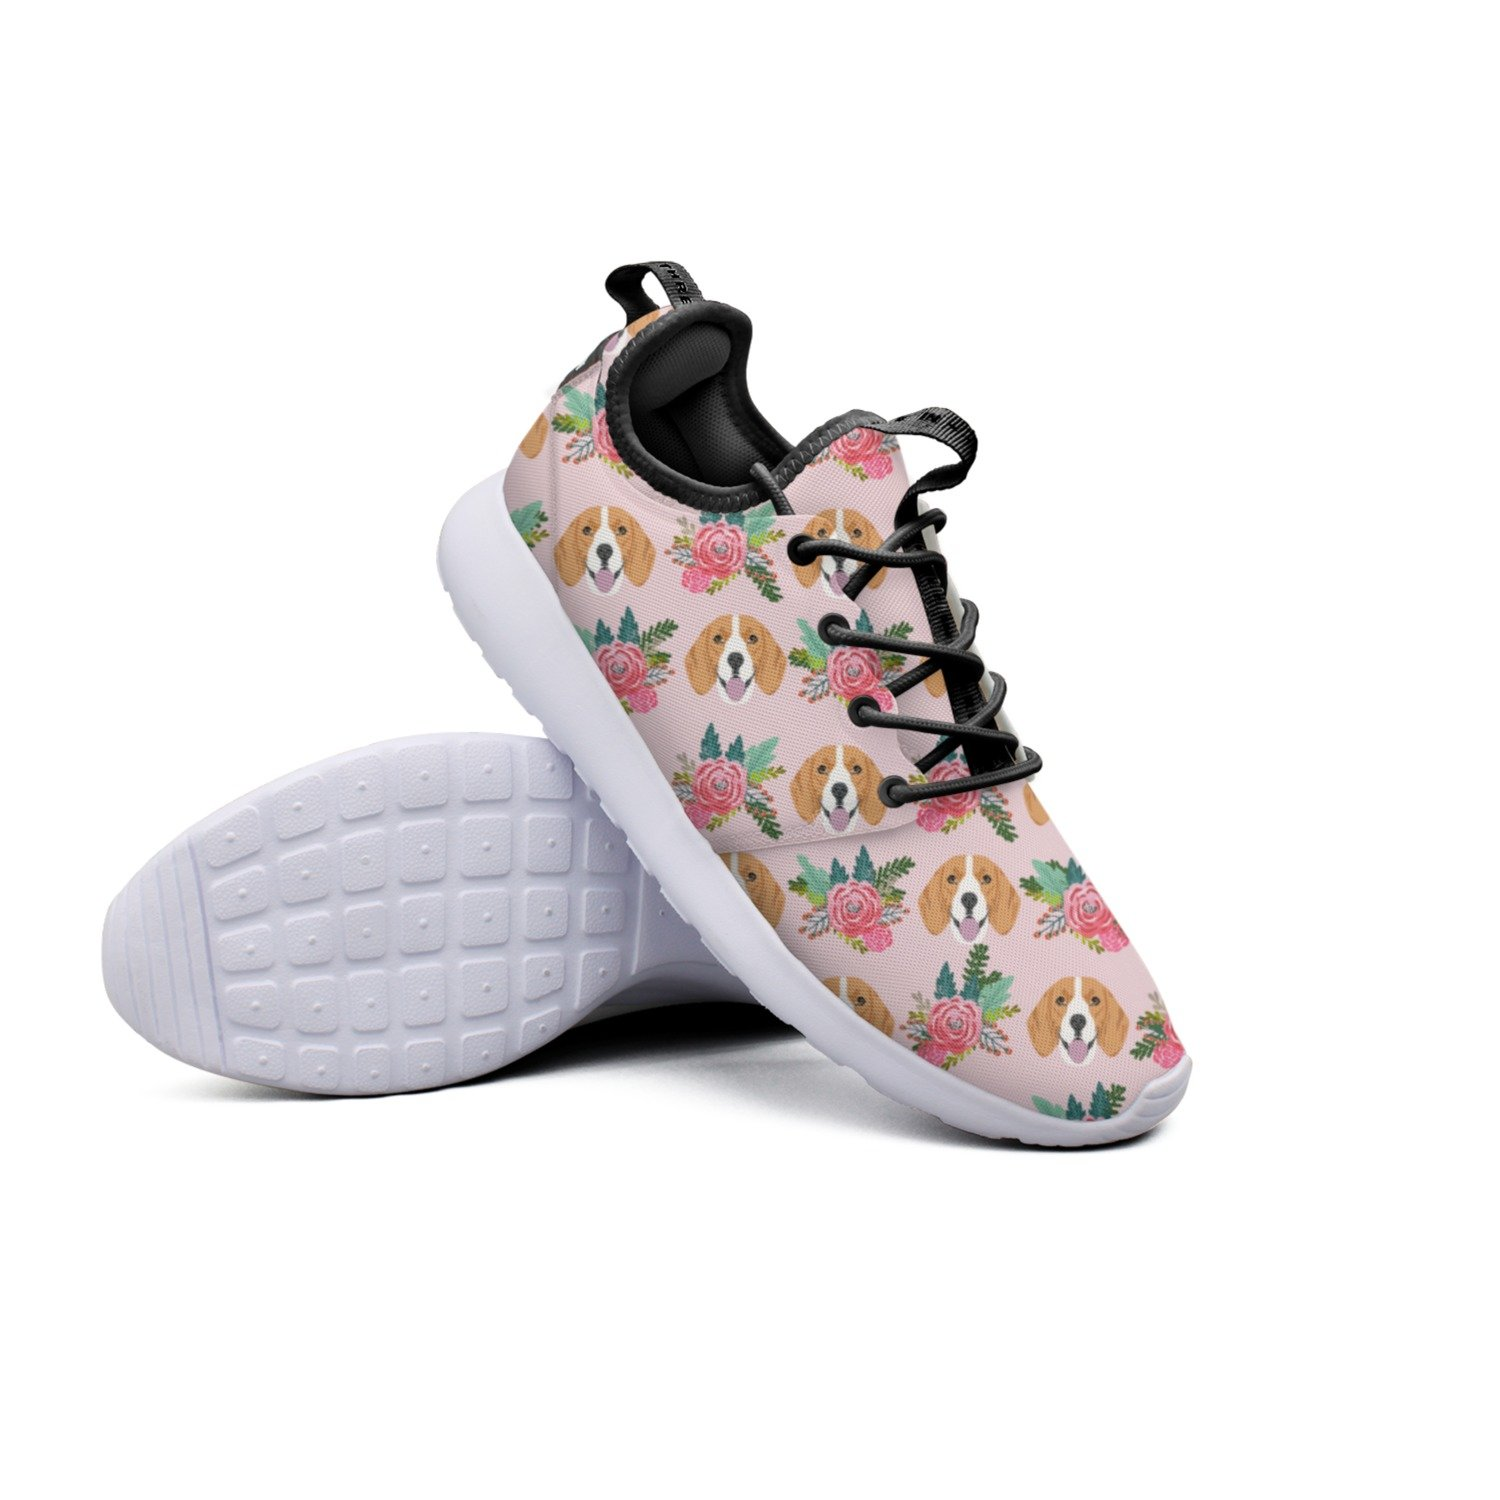 YYuuijk Dog Love Red Rose Net Women's Tennis Shoes Casual Cute Comfortable Trendy Hip Hop Retro Retro Vintage Popular Mesh Lightweight Tennis Sneakers